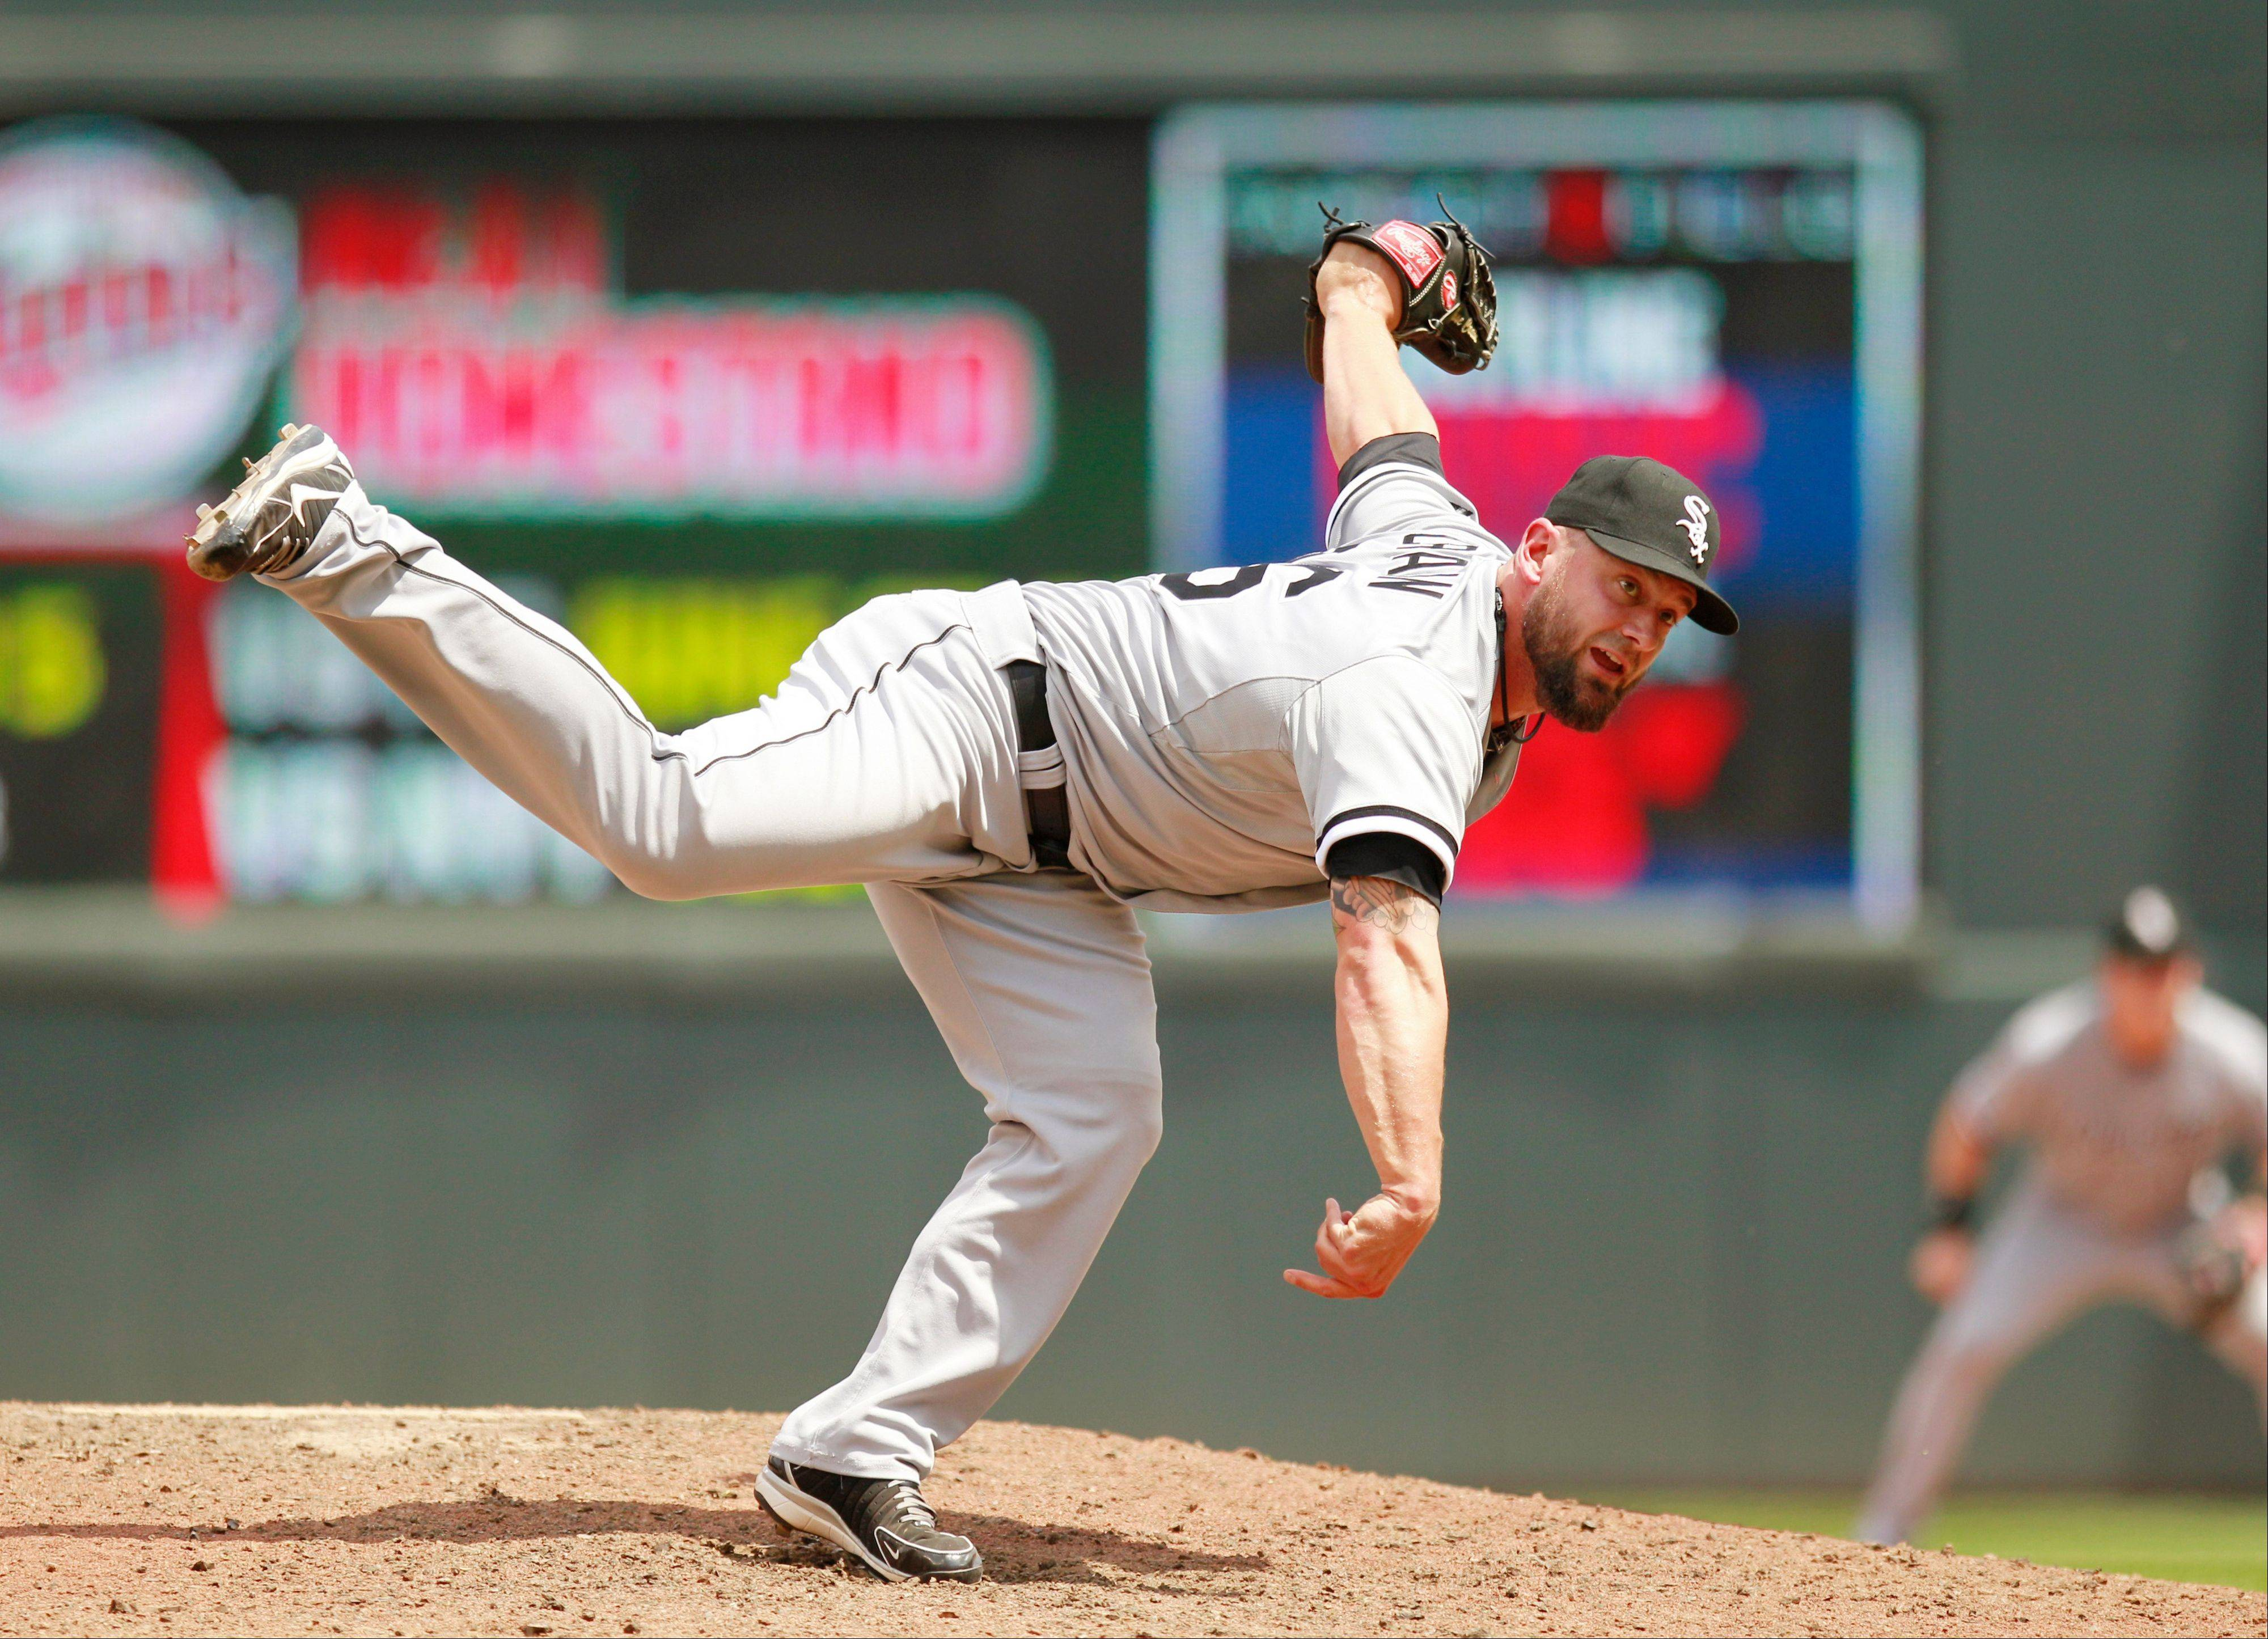 Chicago White Sox relief pitcher Jesse Crain has been traded to the Tampa Bay Rays.